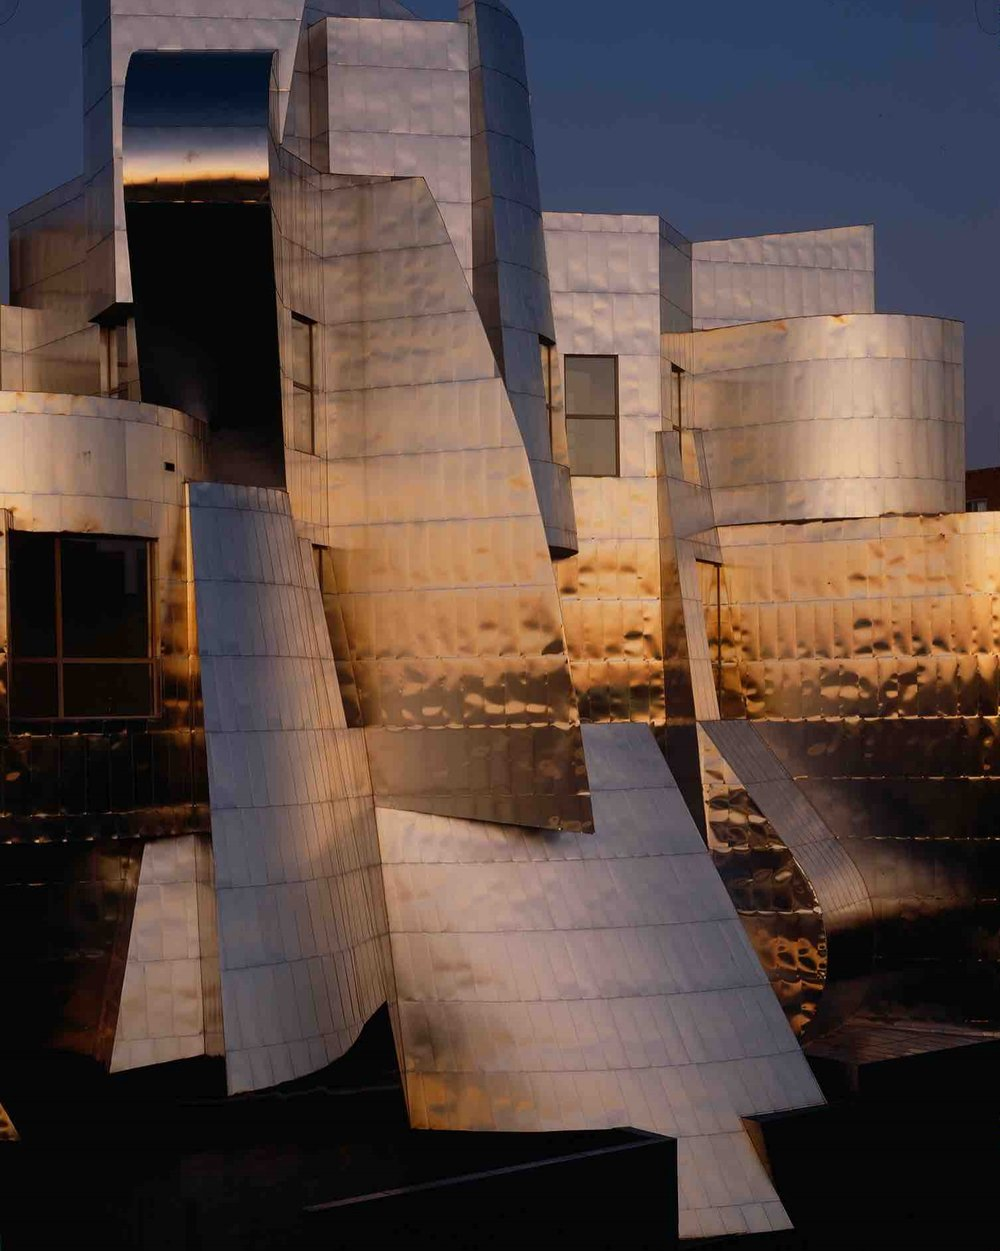 Frank Gehry, University of Minnesota, Frederick R. Weisman Museum (Minneapolis, MN) 1992